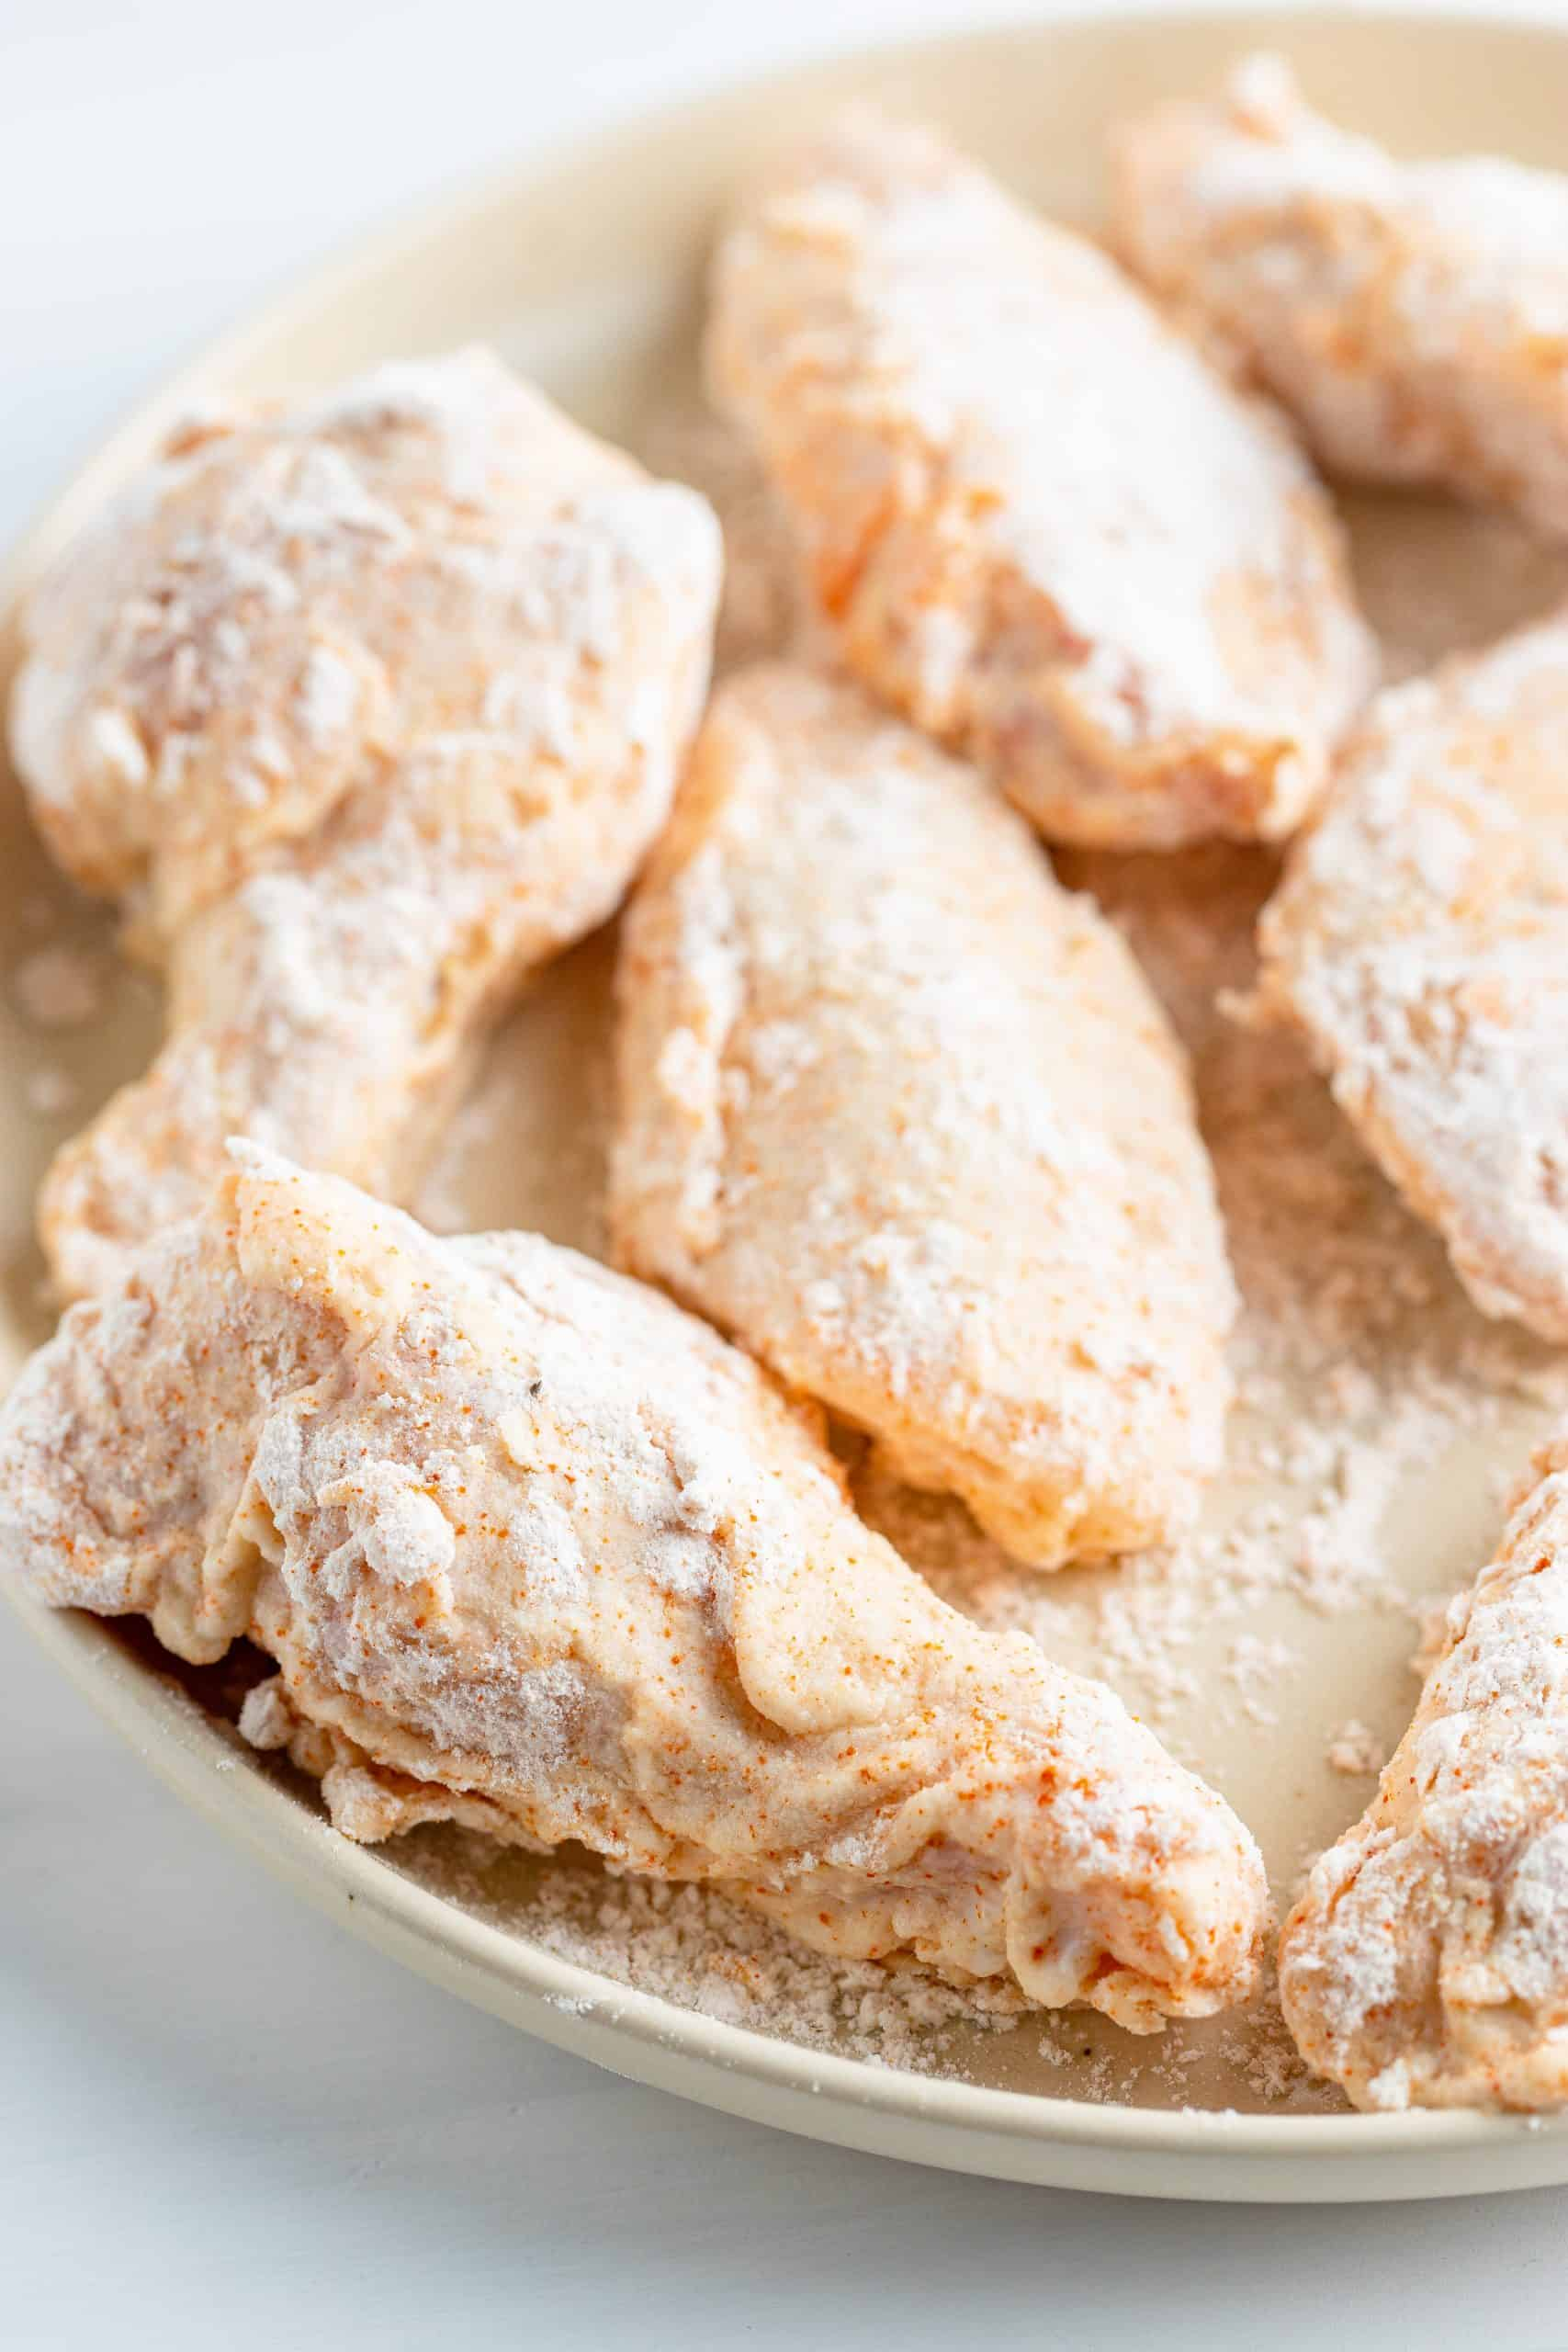 flour coated chicken wings on a large round plate.